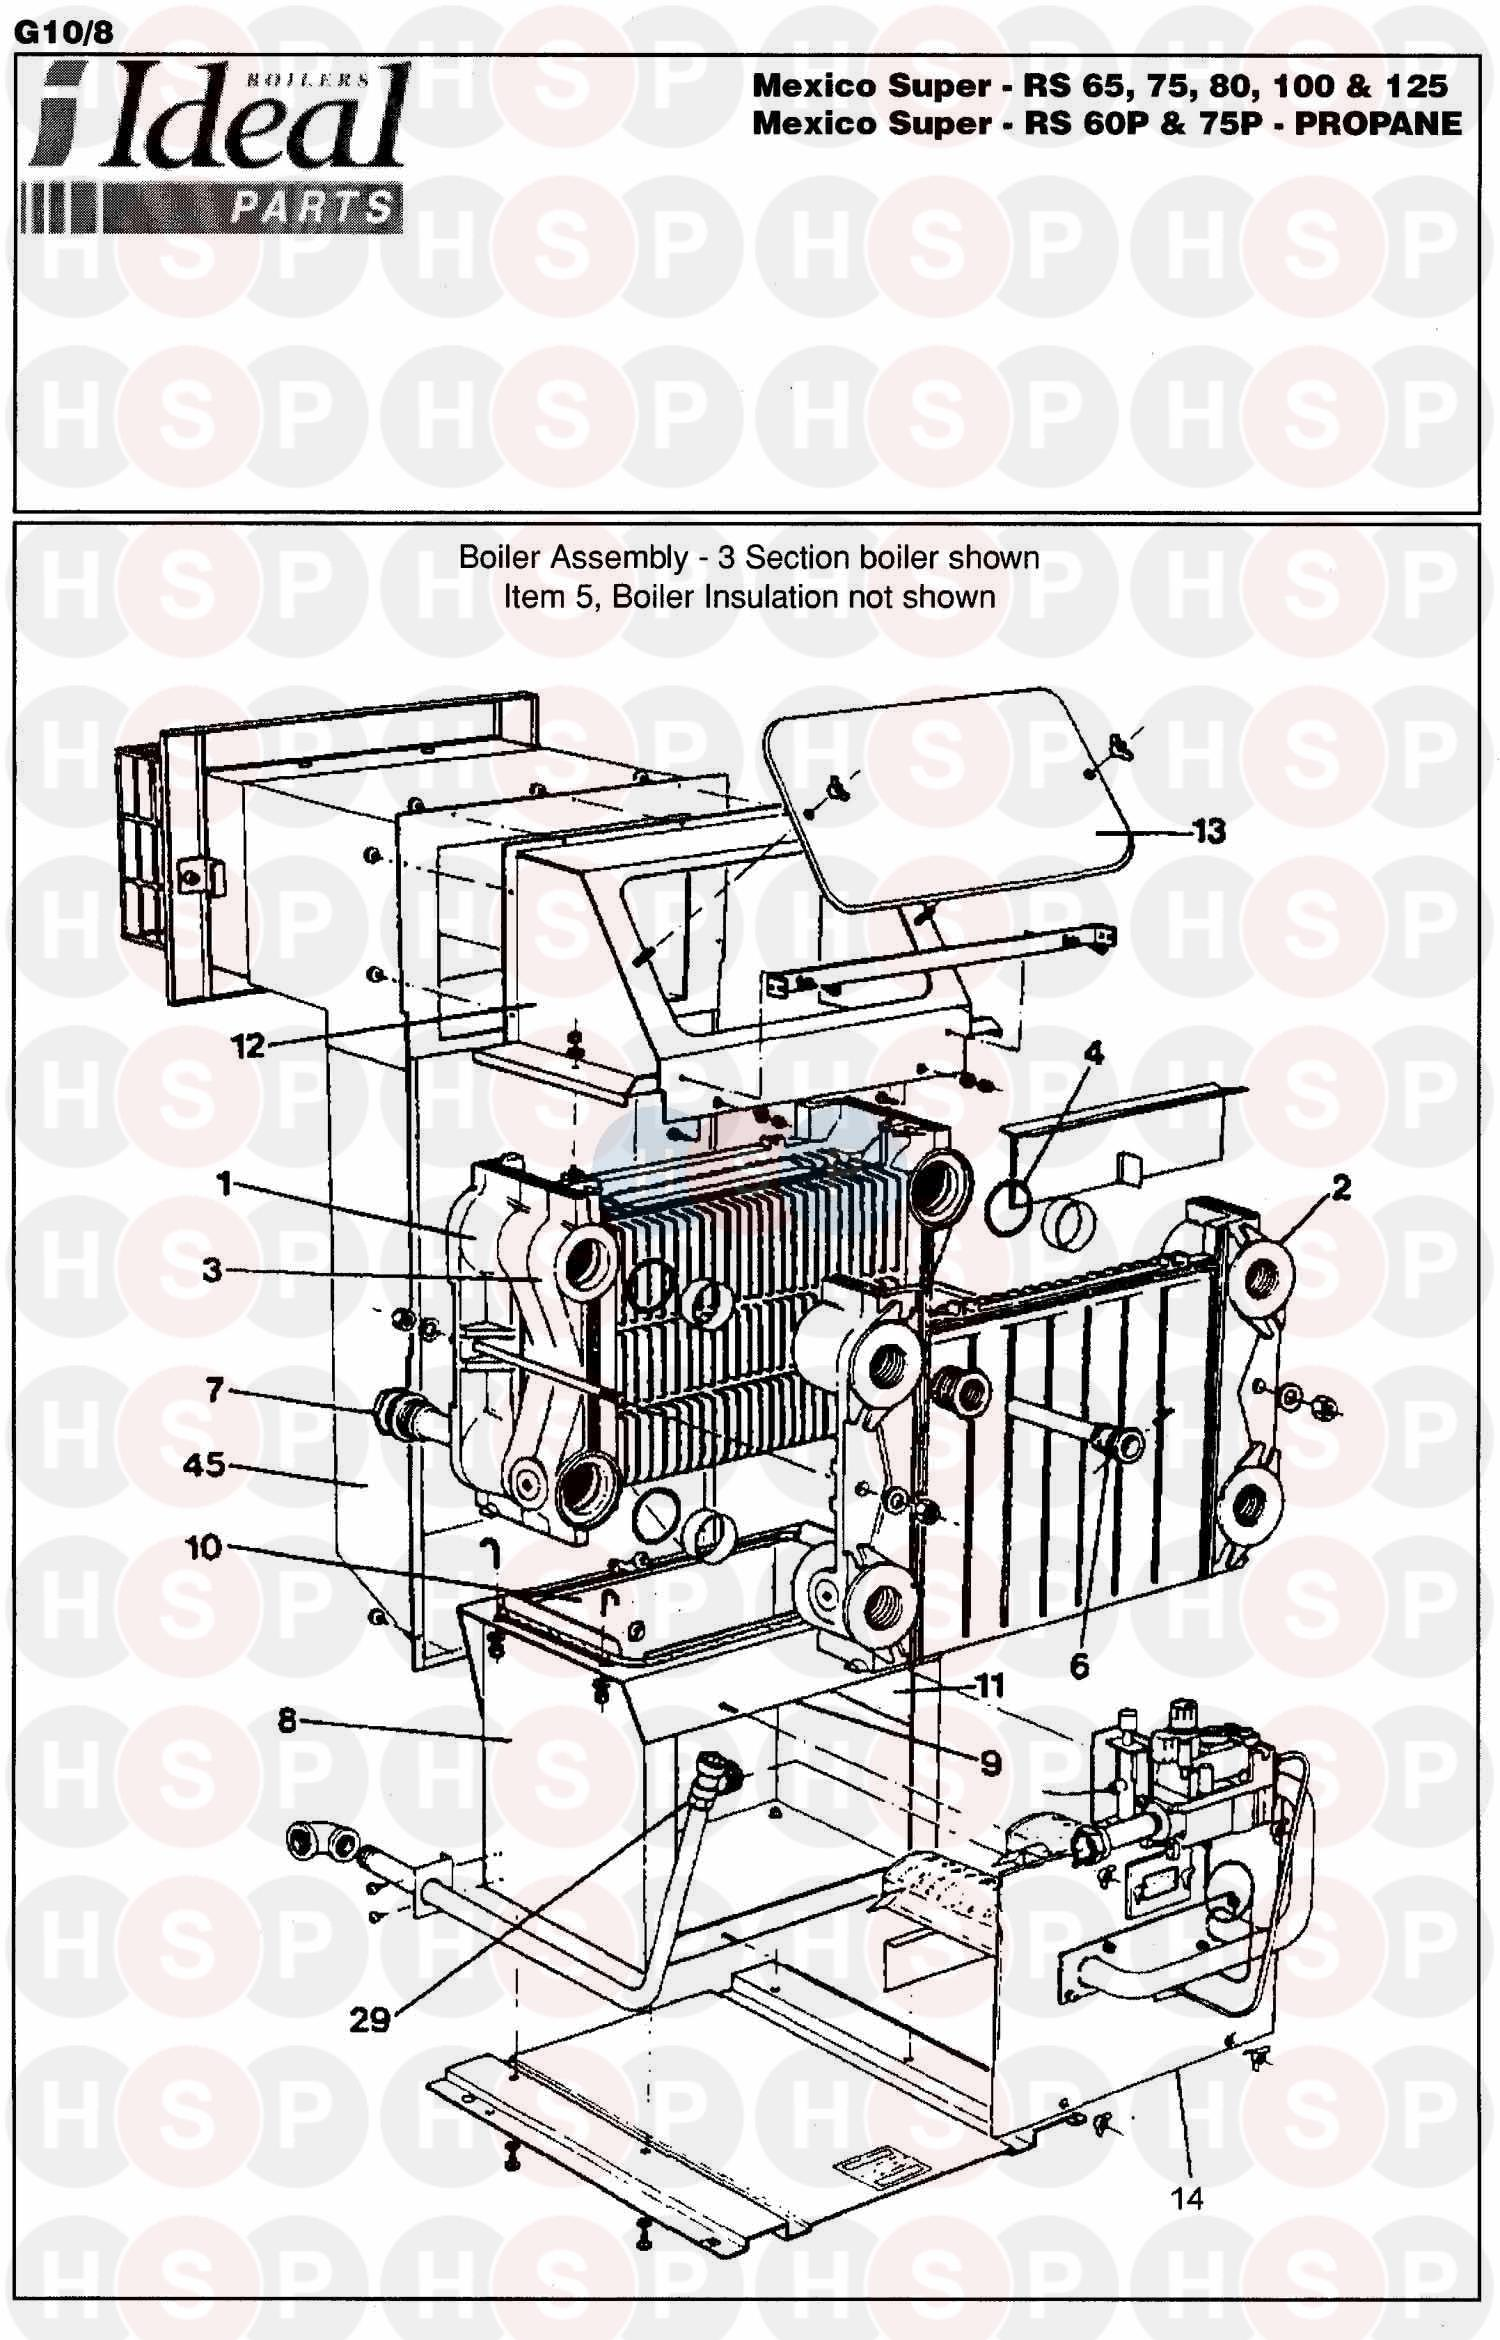 Ideal MEXICO SUPER RS 125 (BOILER ASSEMBLY 1) Diagram